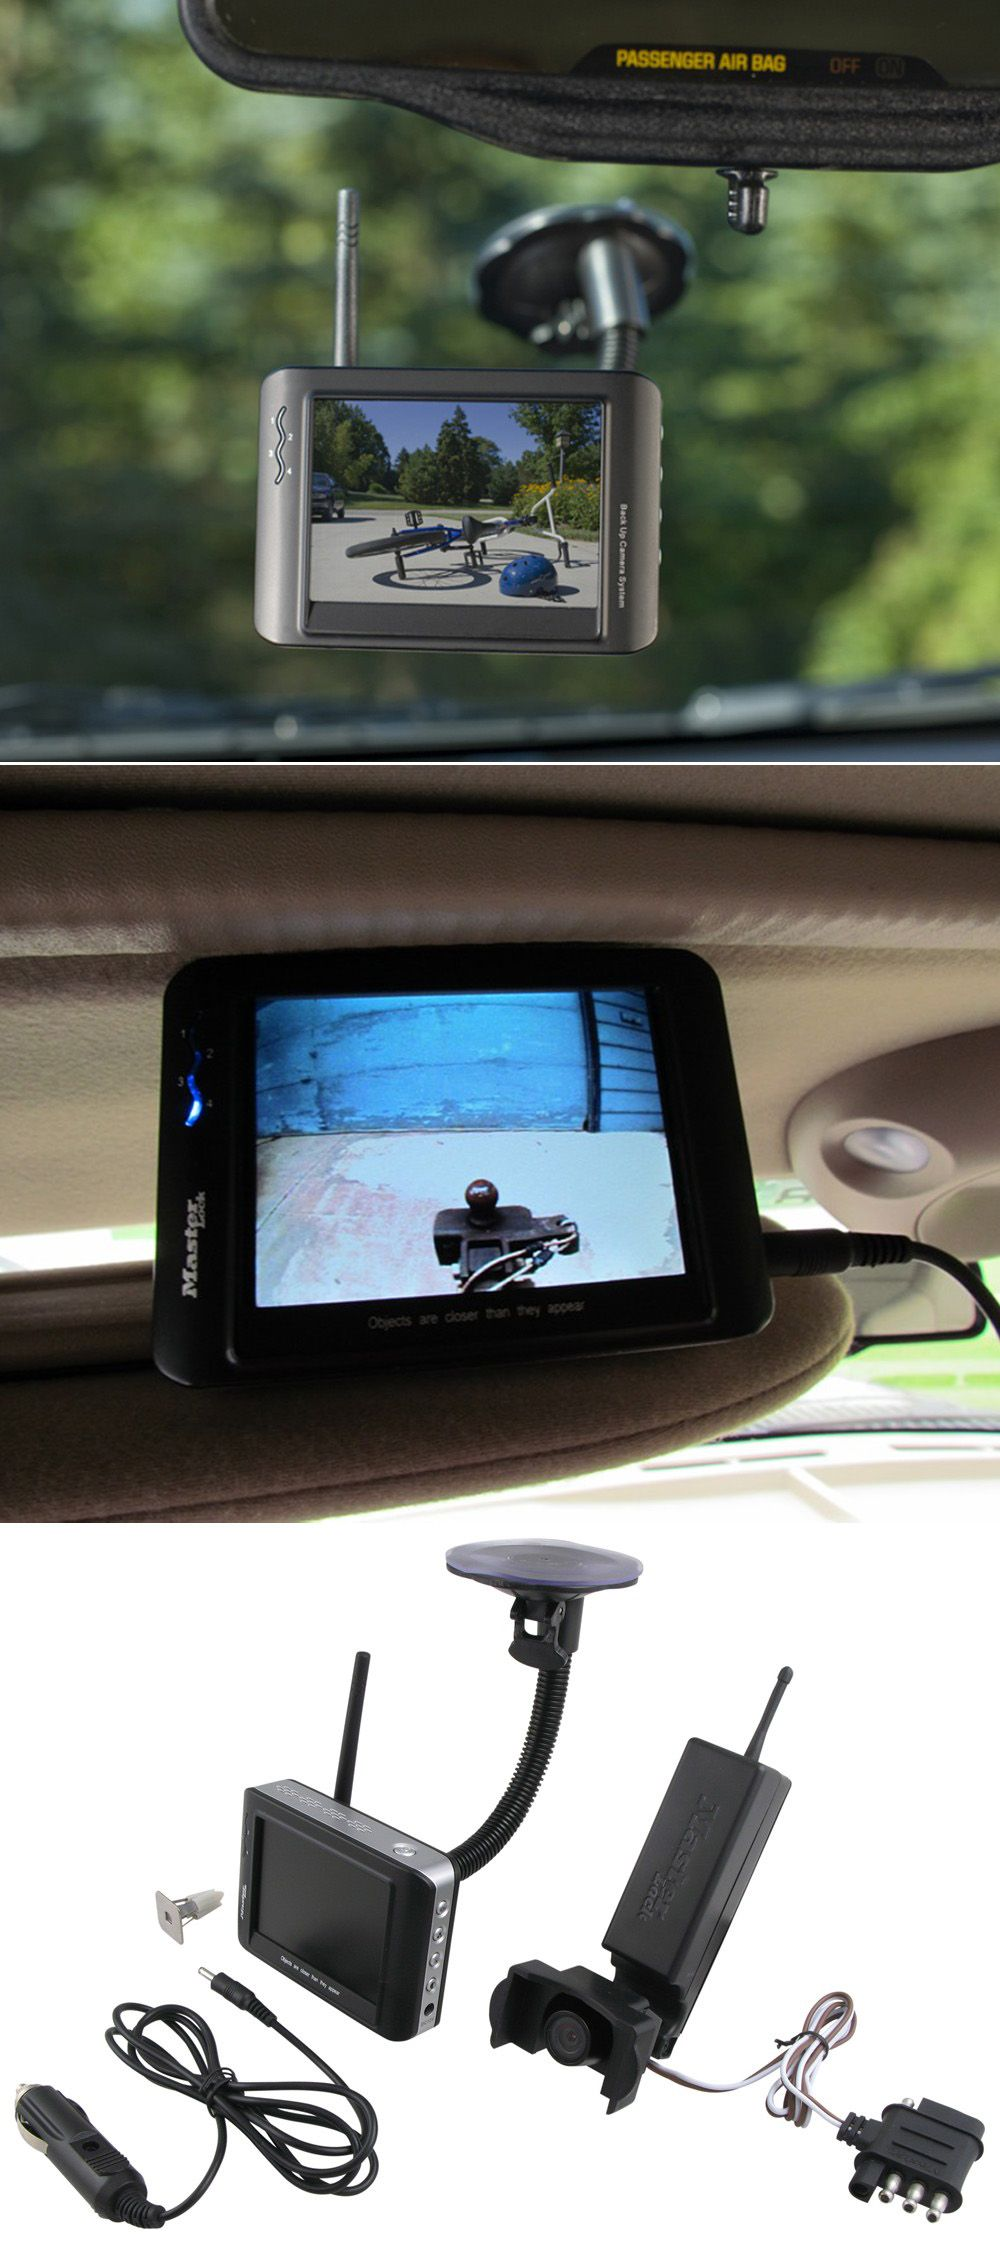 Master Lock Backup Camera For Lining Up The Hitch Or Even Just Backing A Unique Gift Idea Him Who Love Their Truck